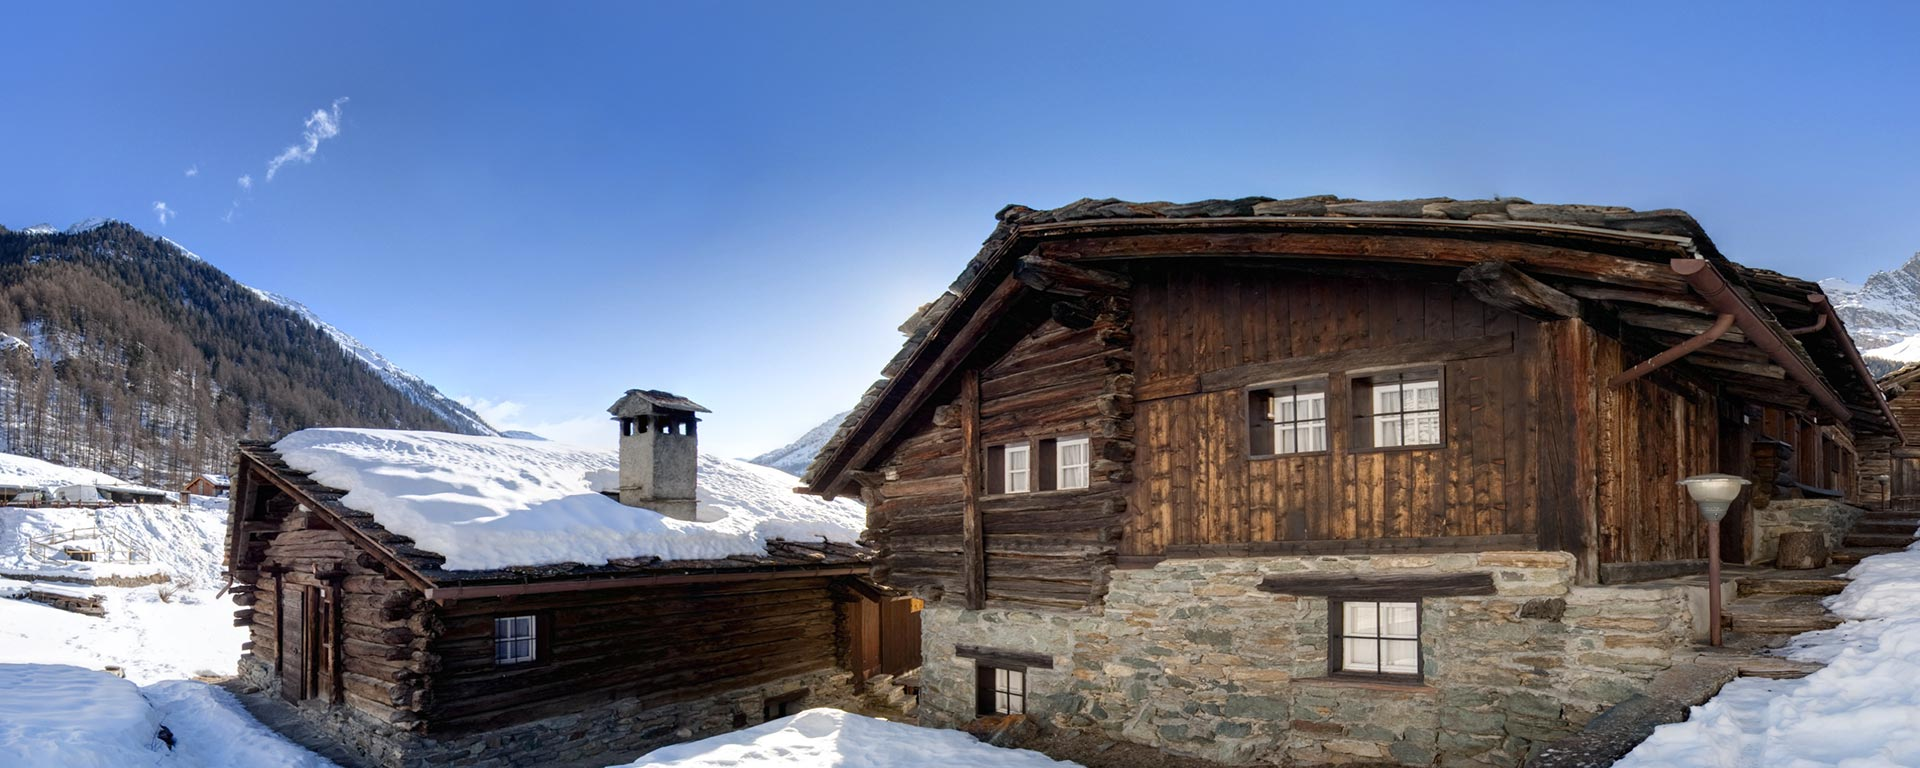 two snow covered mountain huts in the Dolomites near San Vigilio di Marebbe during a sunny winter day